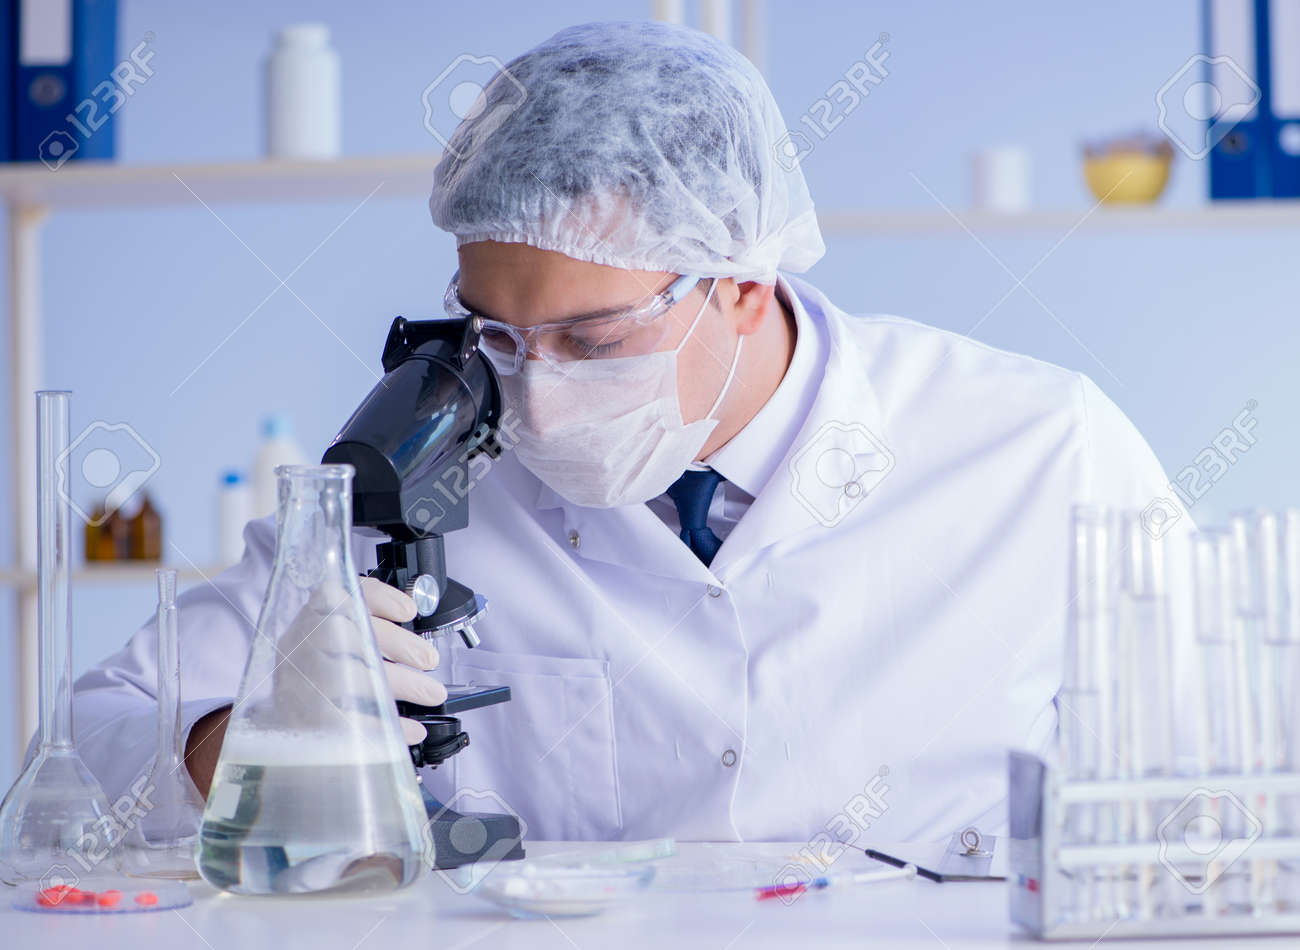 The man in the lab testing new cleaning solution detergent - 135220263